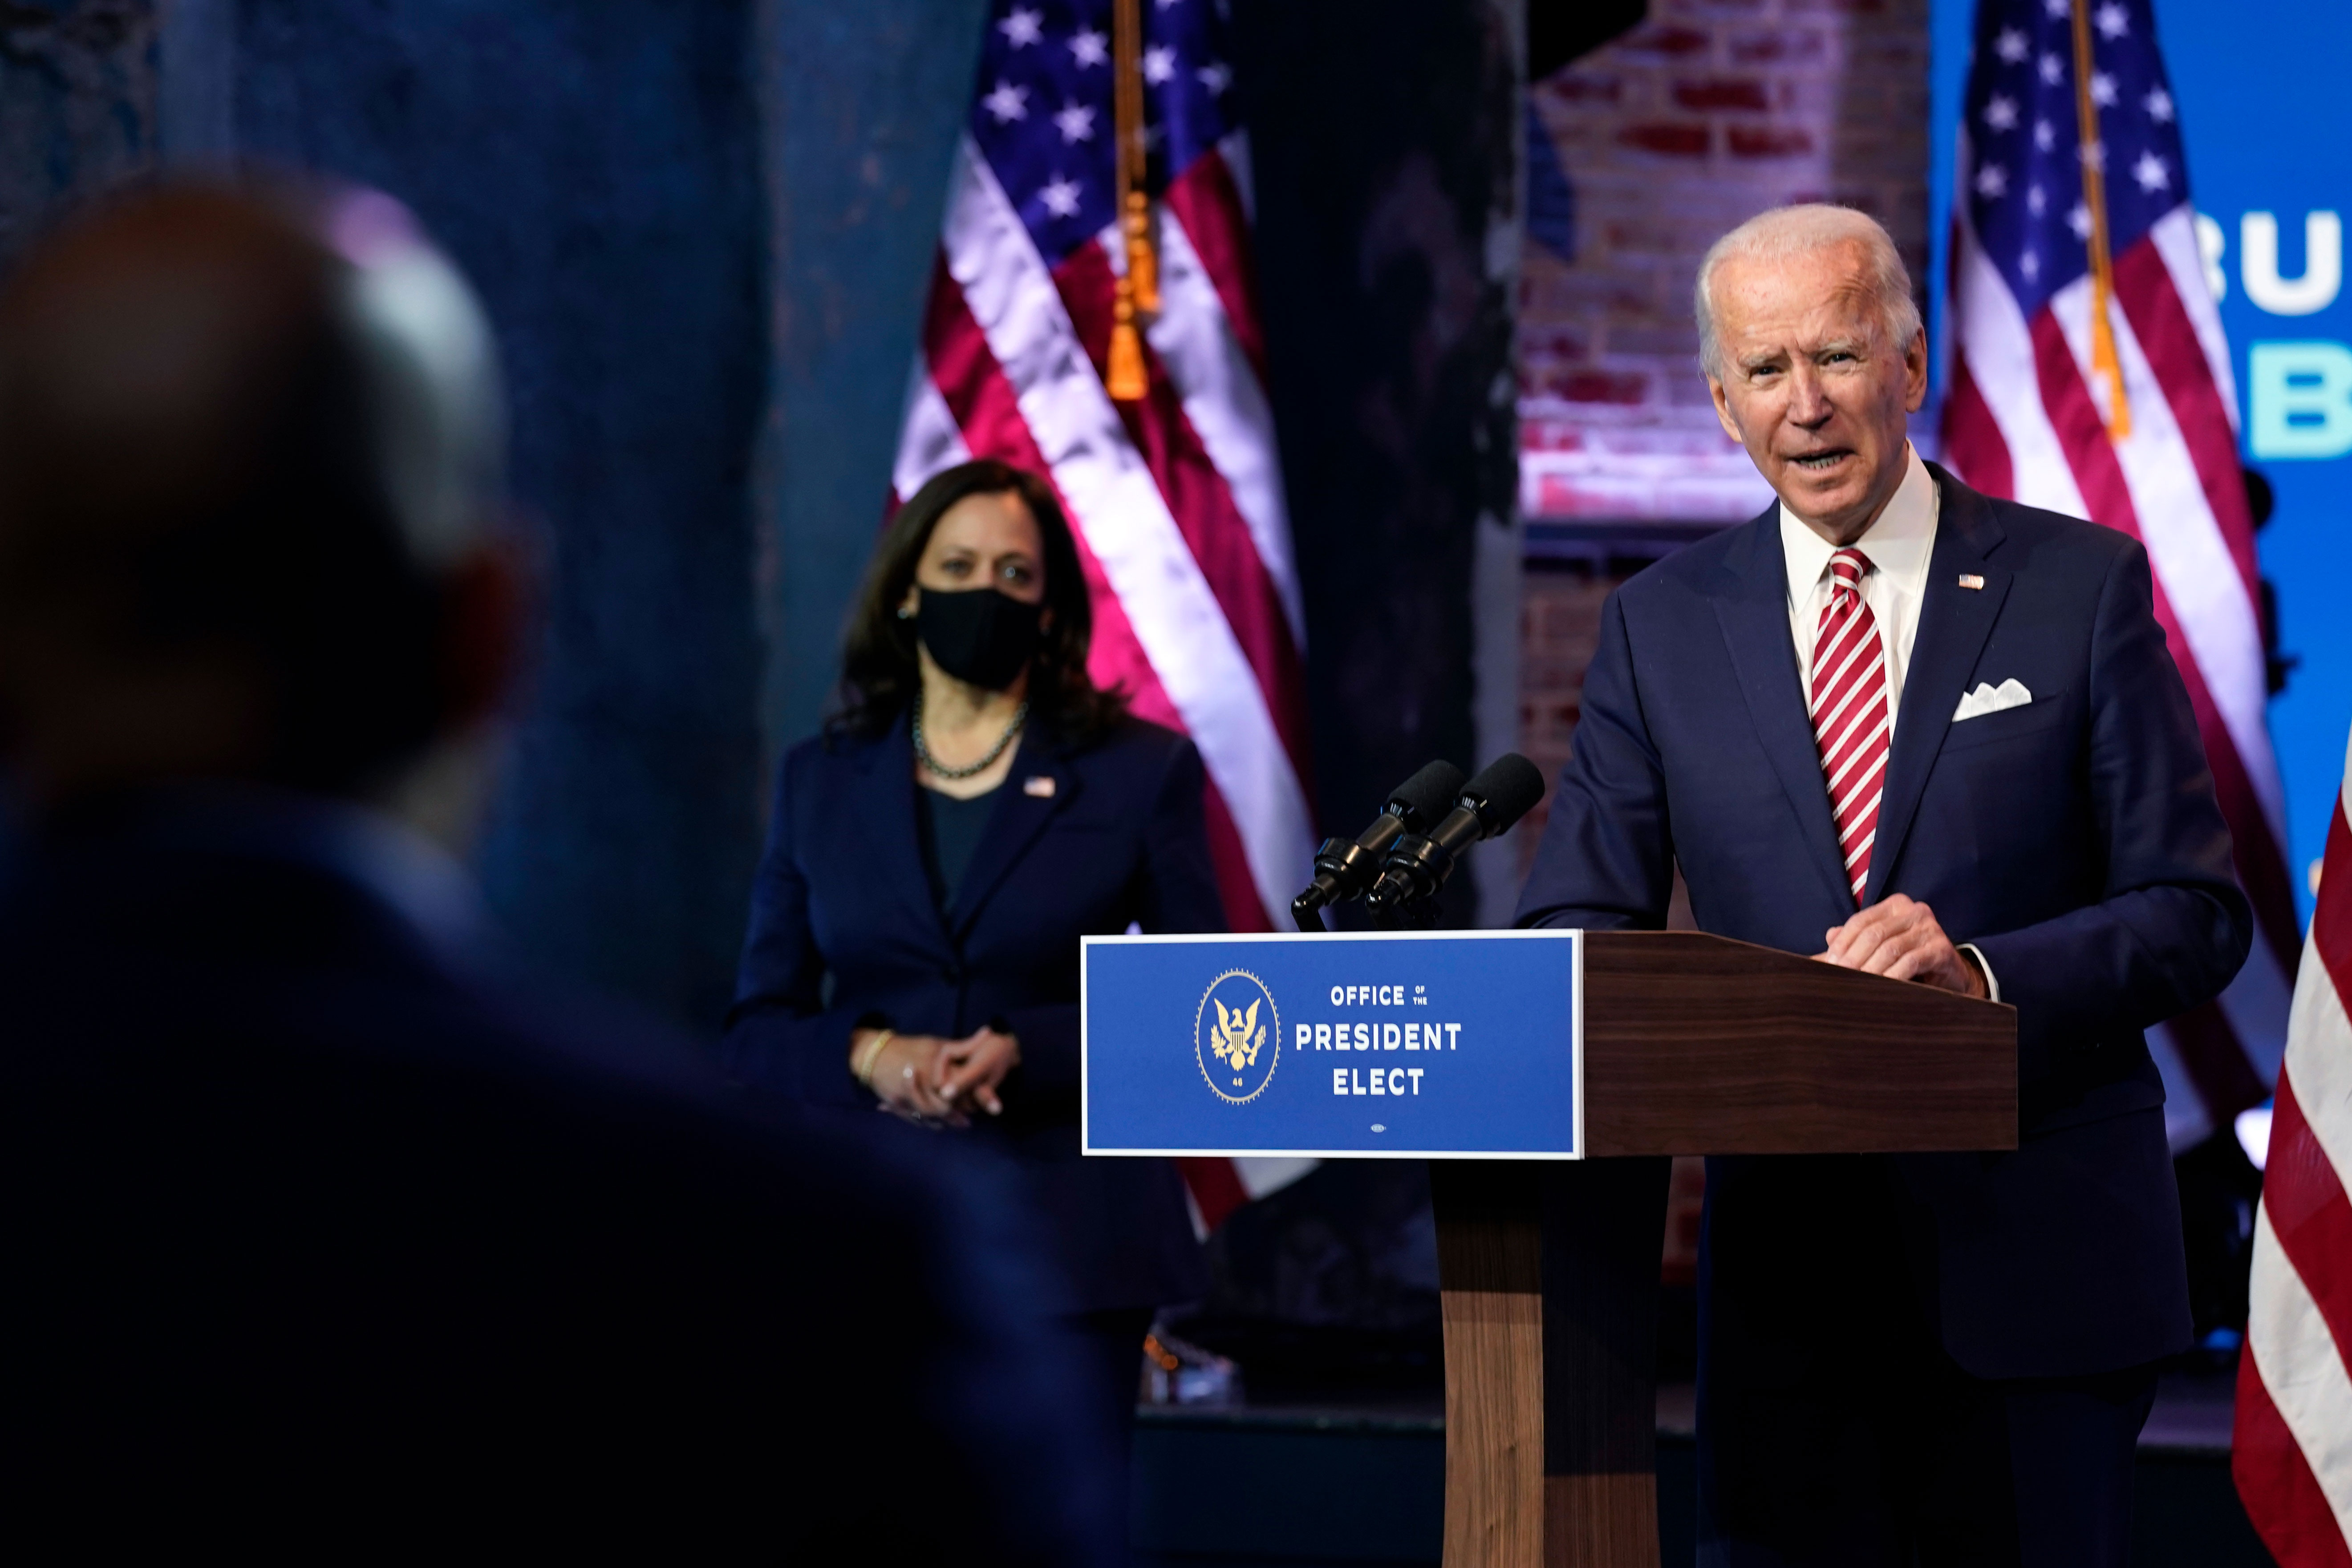 President-elect Joe Biden and Vice President-elect Kamala Harris hold a news conference on November 16 in Wilmington, Delaware.